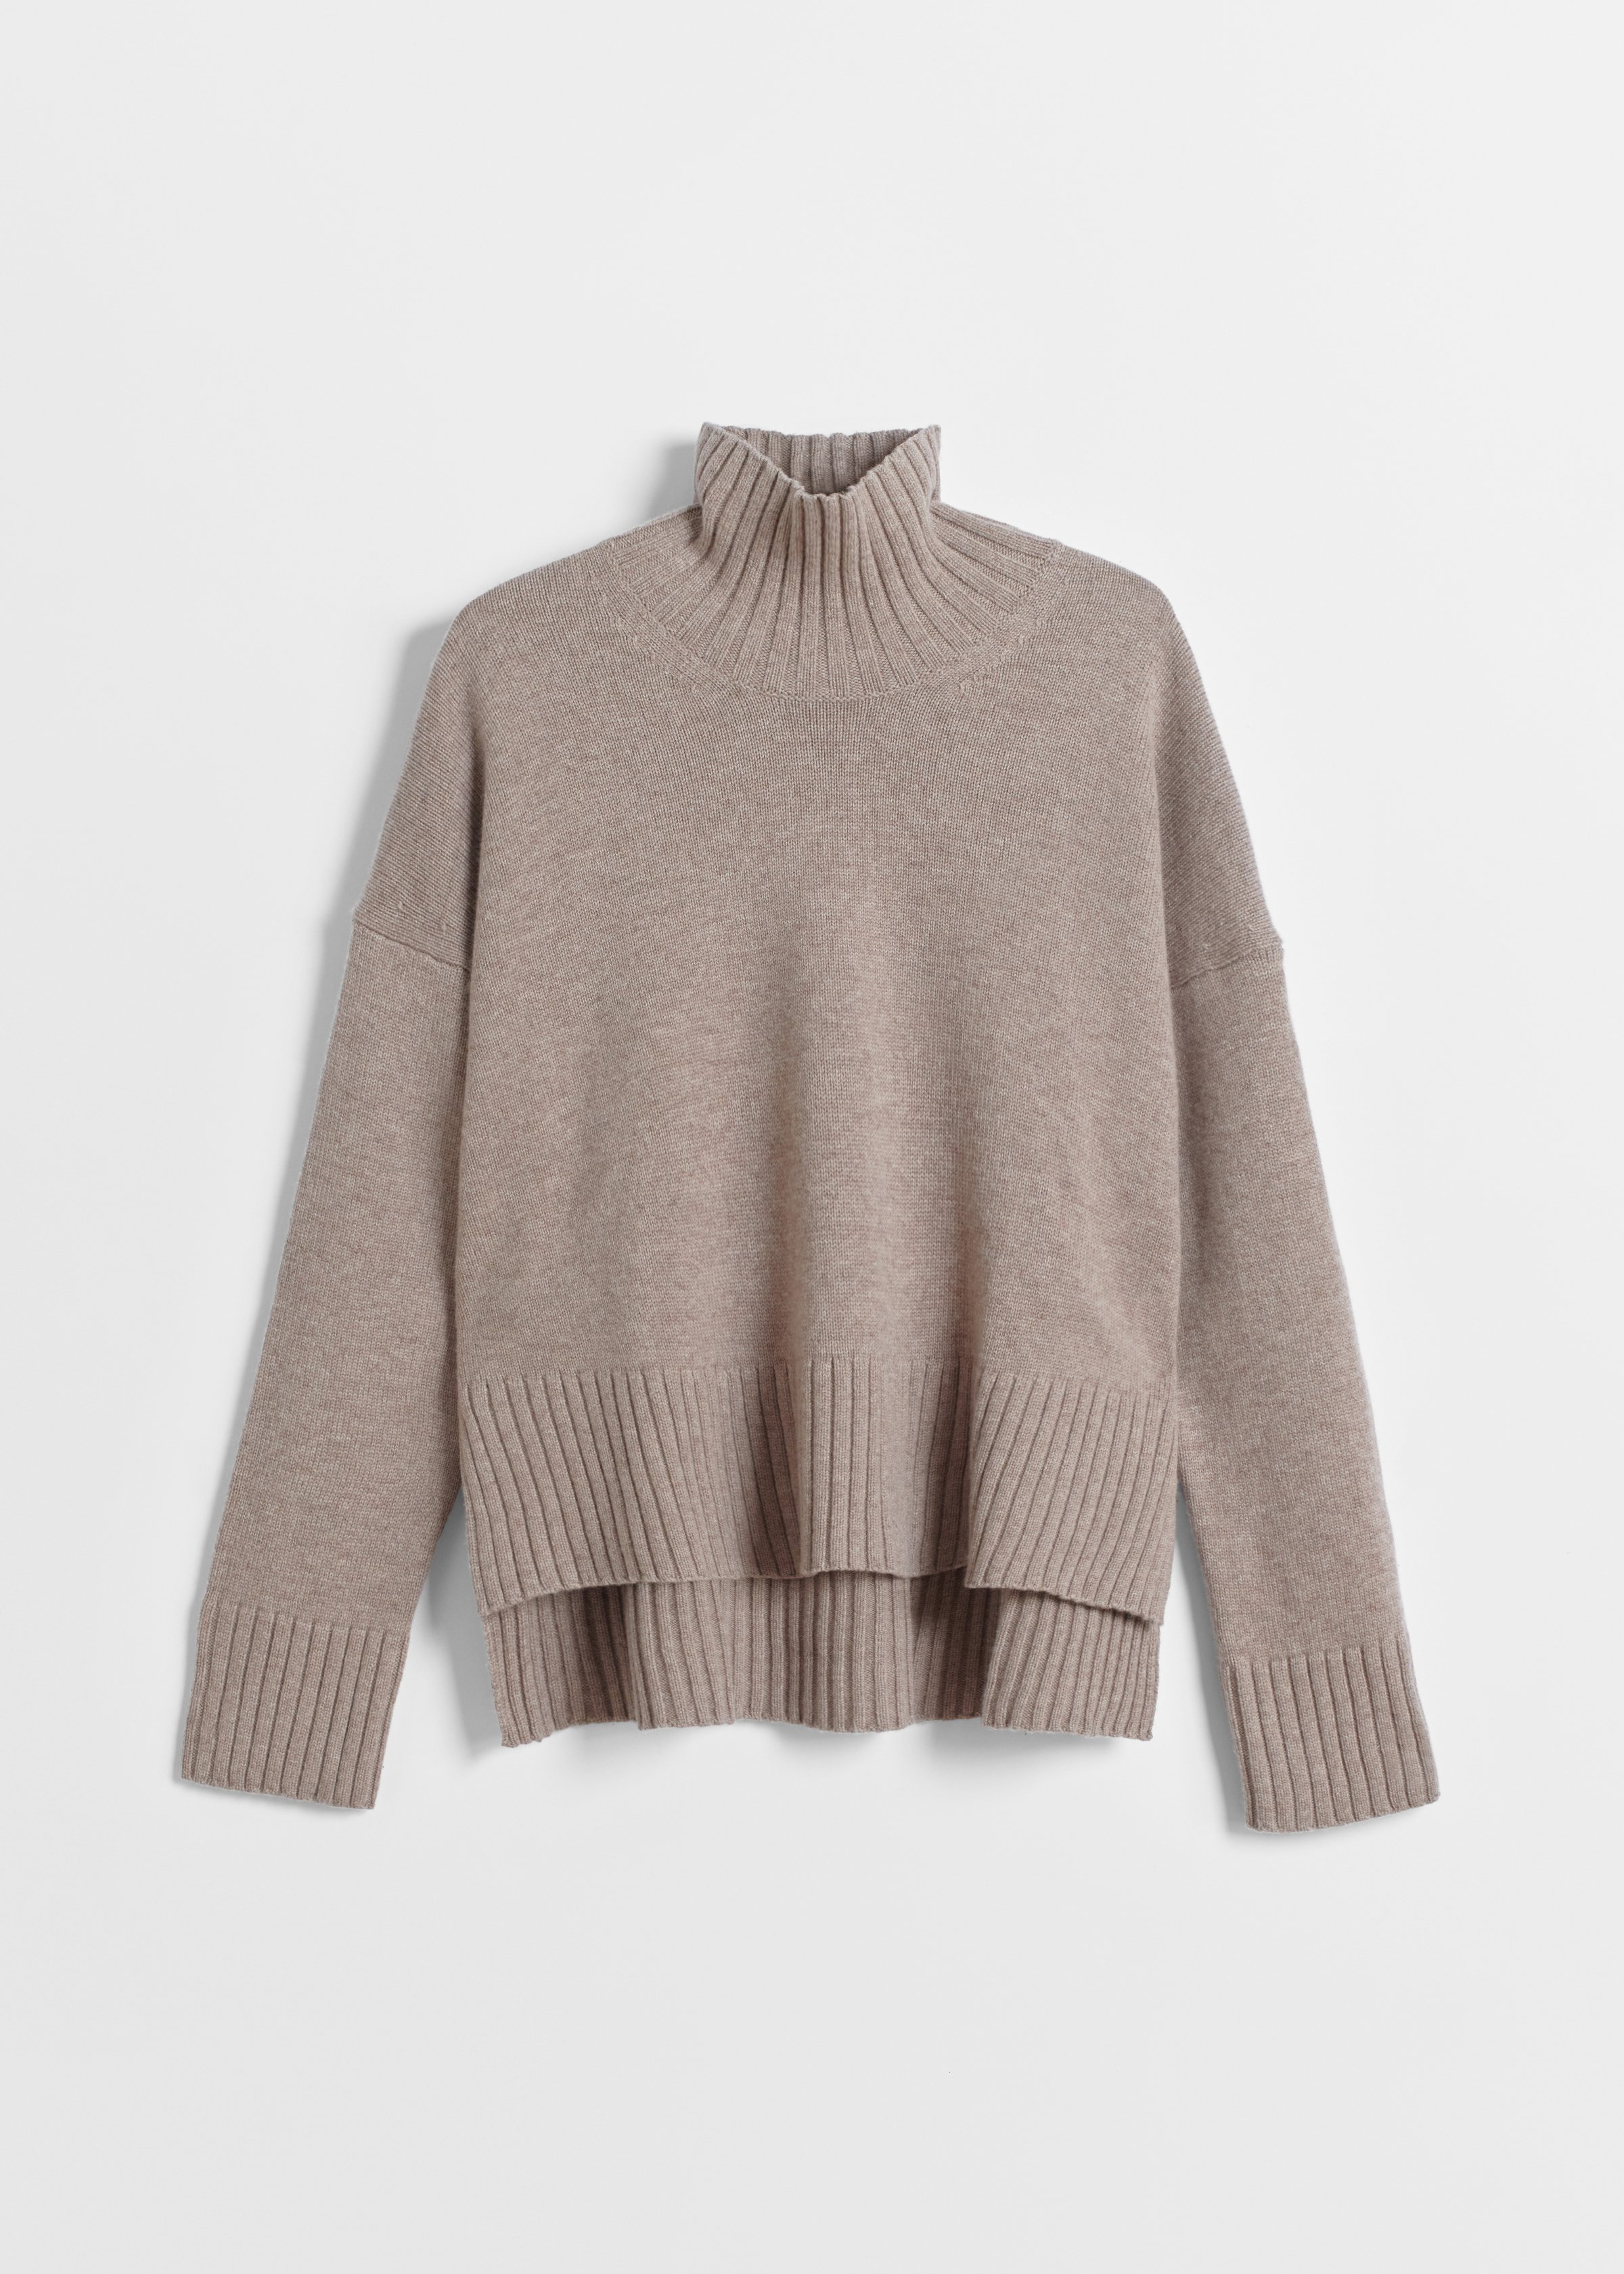 High Neck Sweater in Wool Cashmere - Grey in Taupe by Co Collections